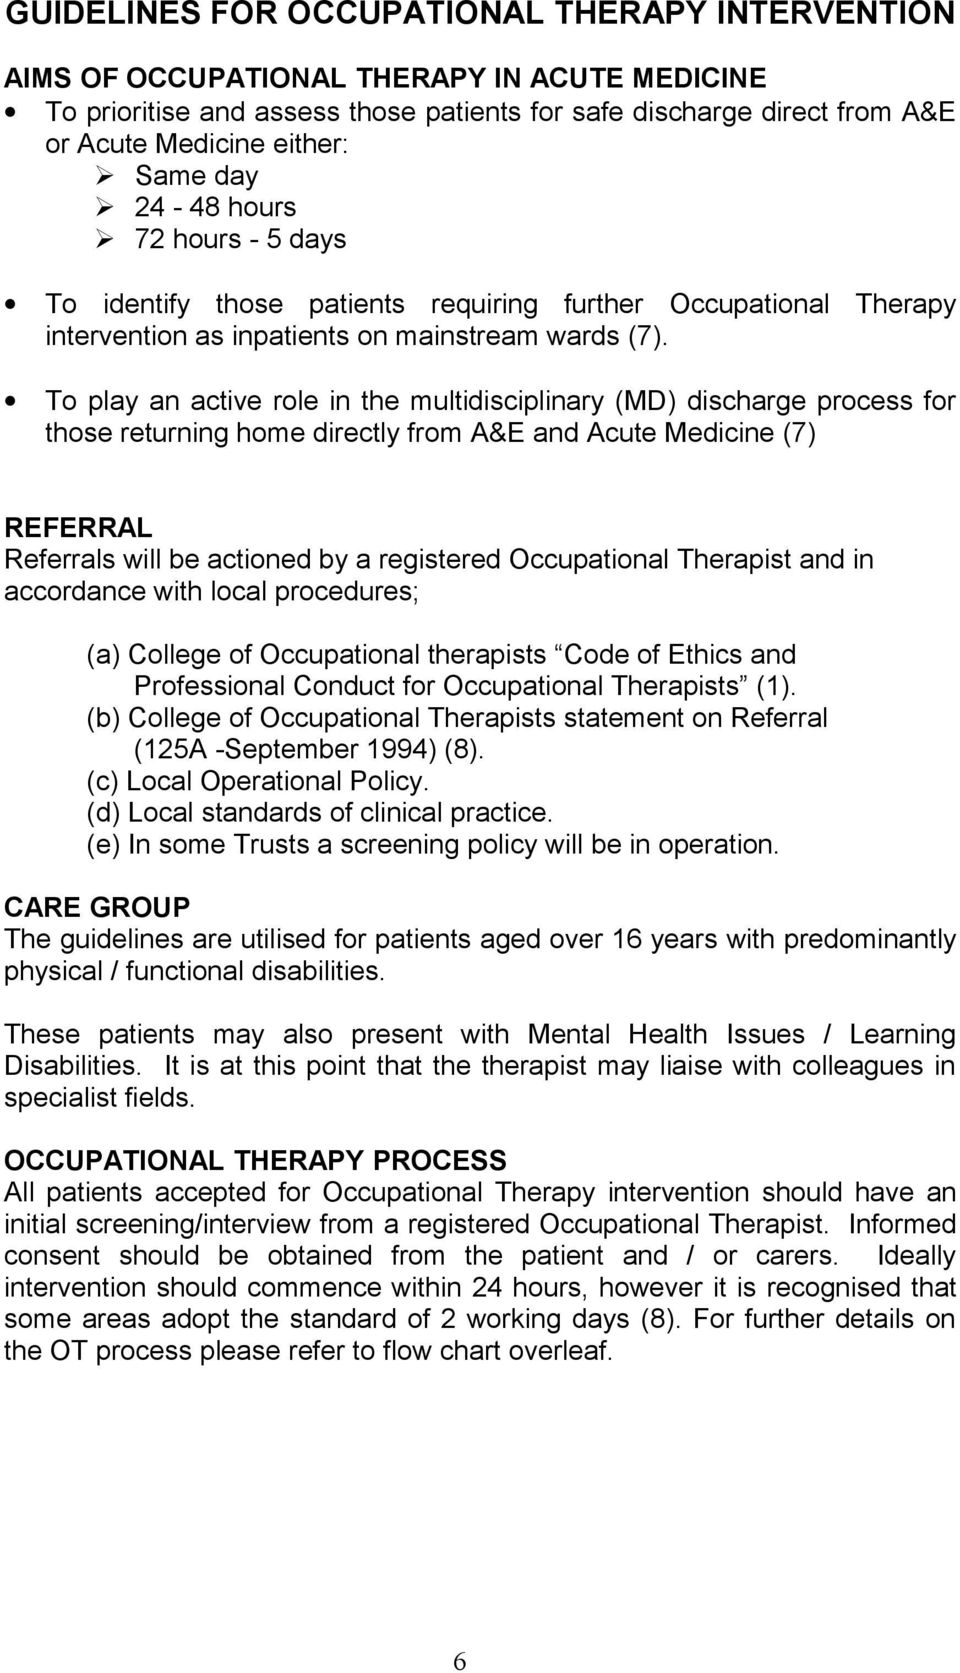 Occupational Therapy Best Practice Guidelines For Acute Medical Services Pdf Free Download